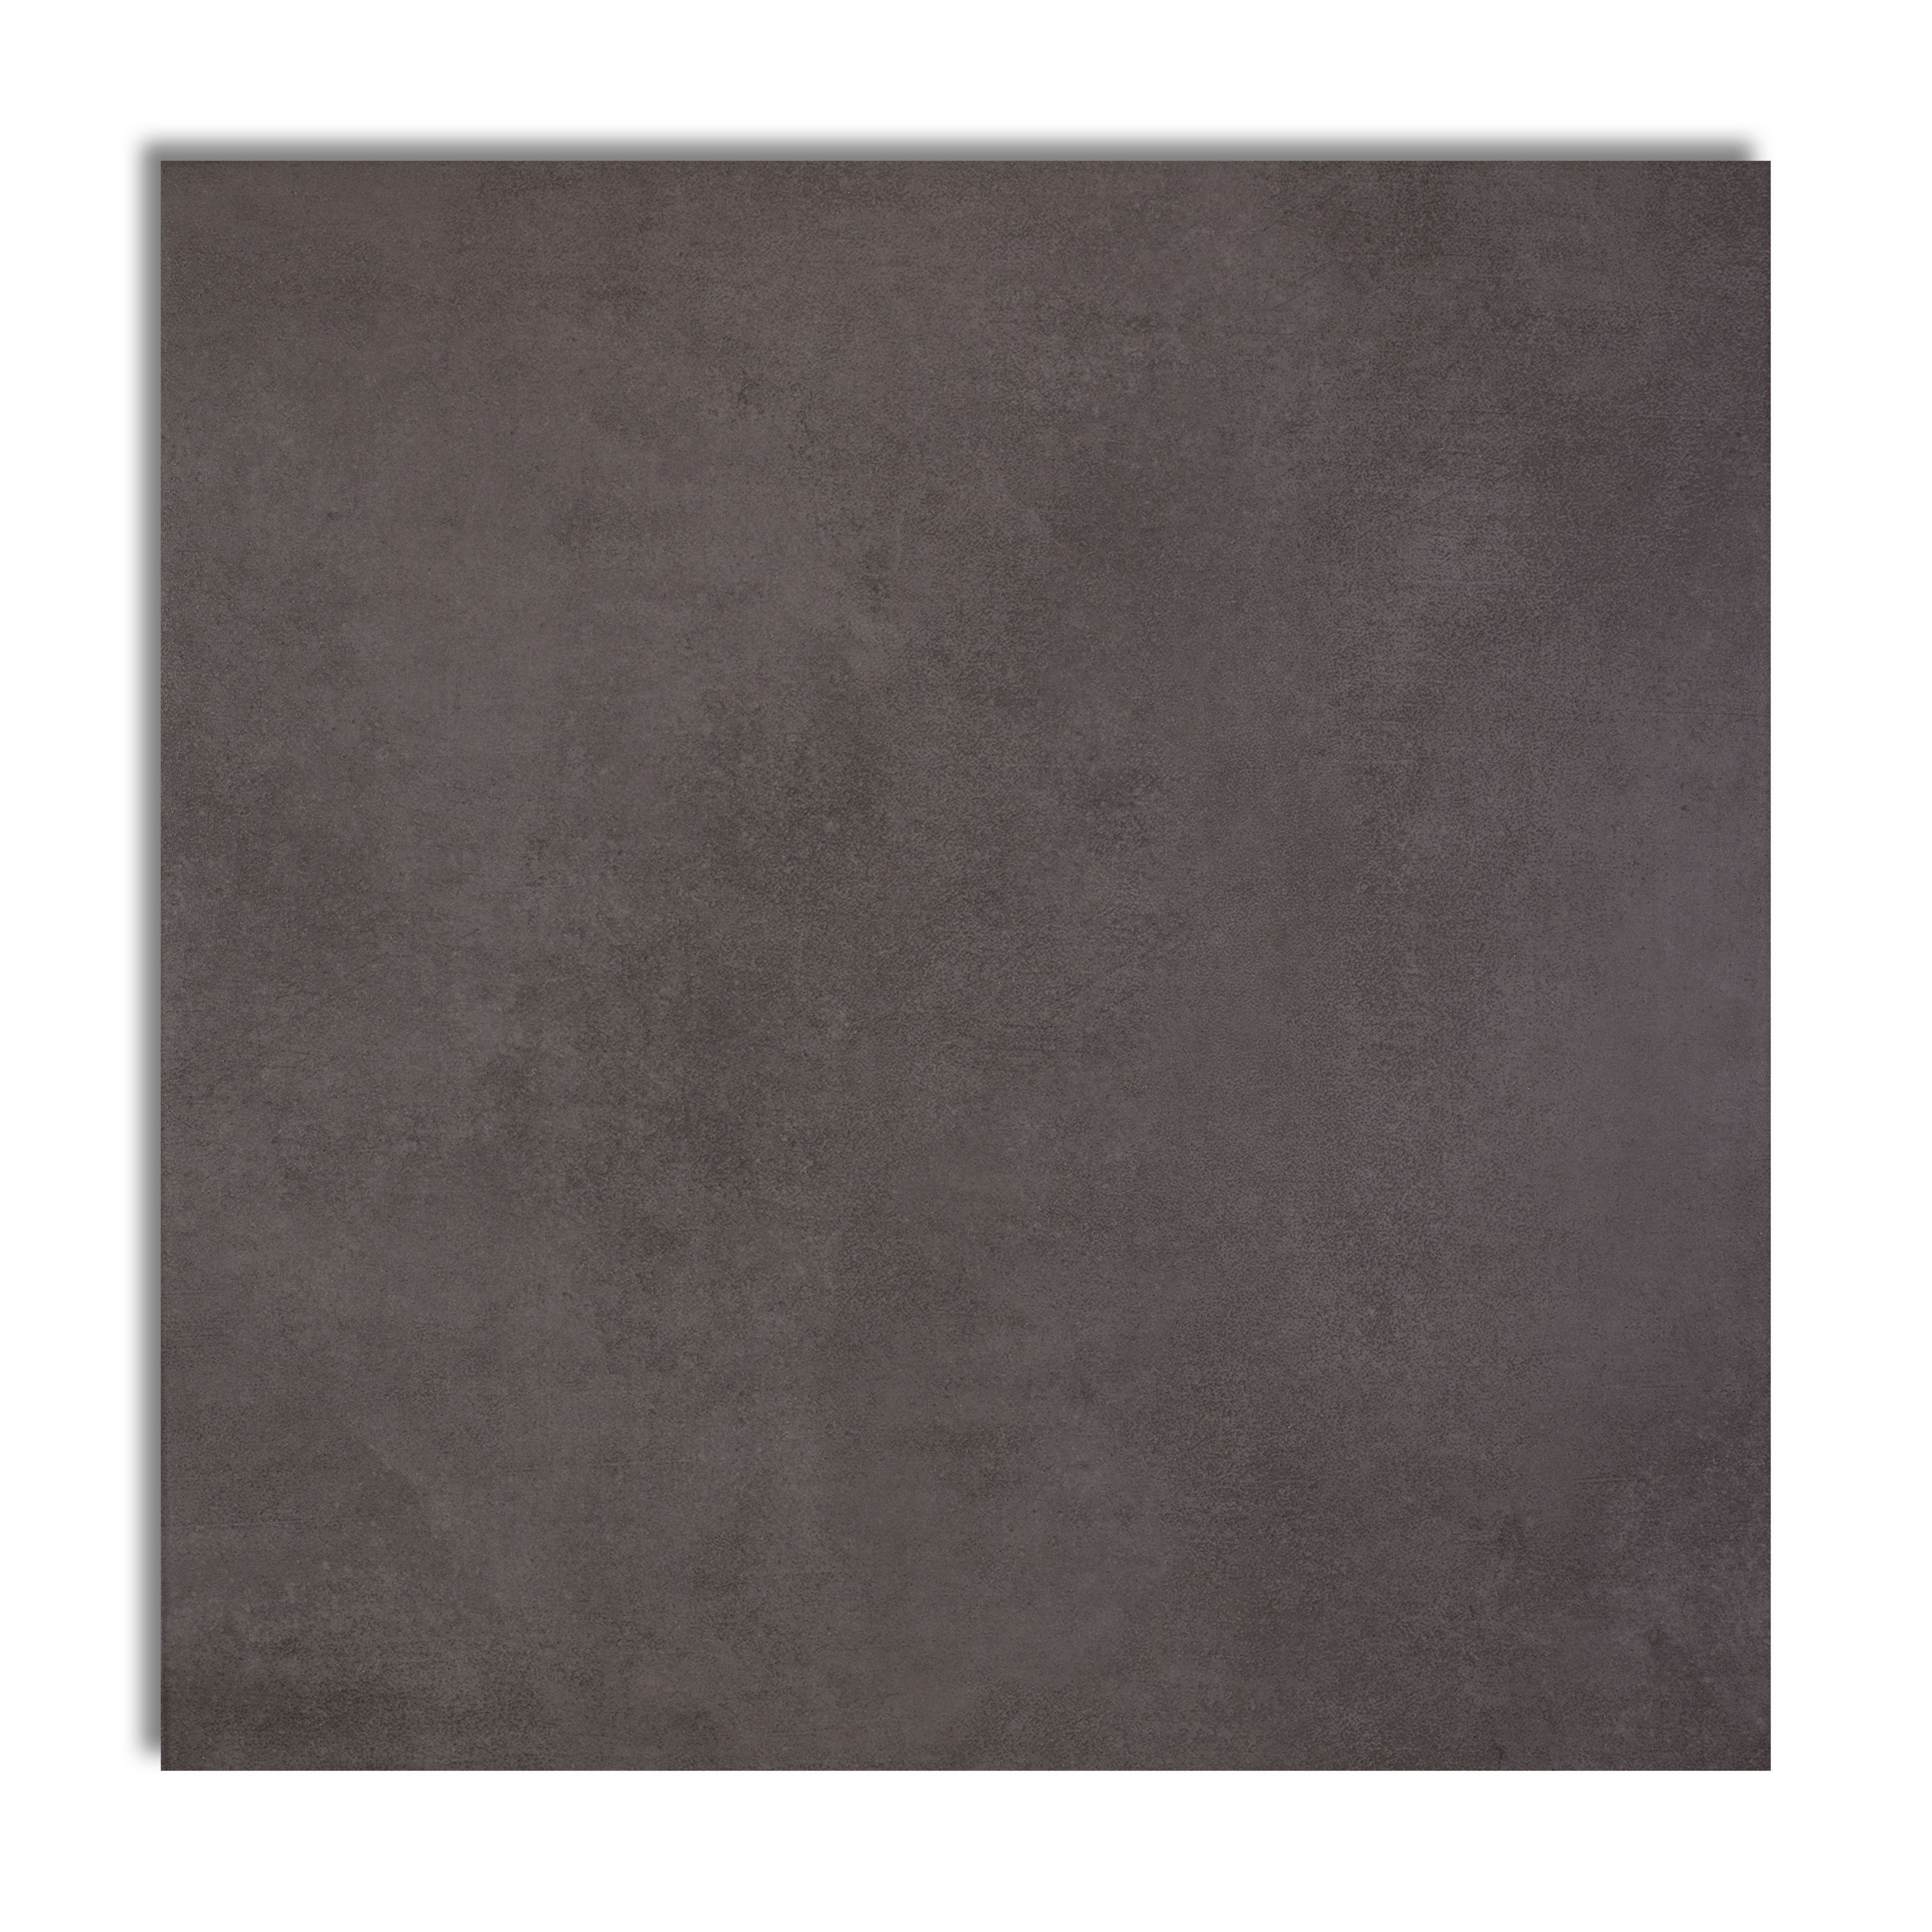 Washington Anthracite Stone Effect Porcelain Floor Tile, Pack Of 5, (l)450mm (w)450mm